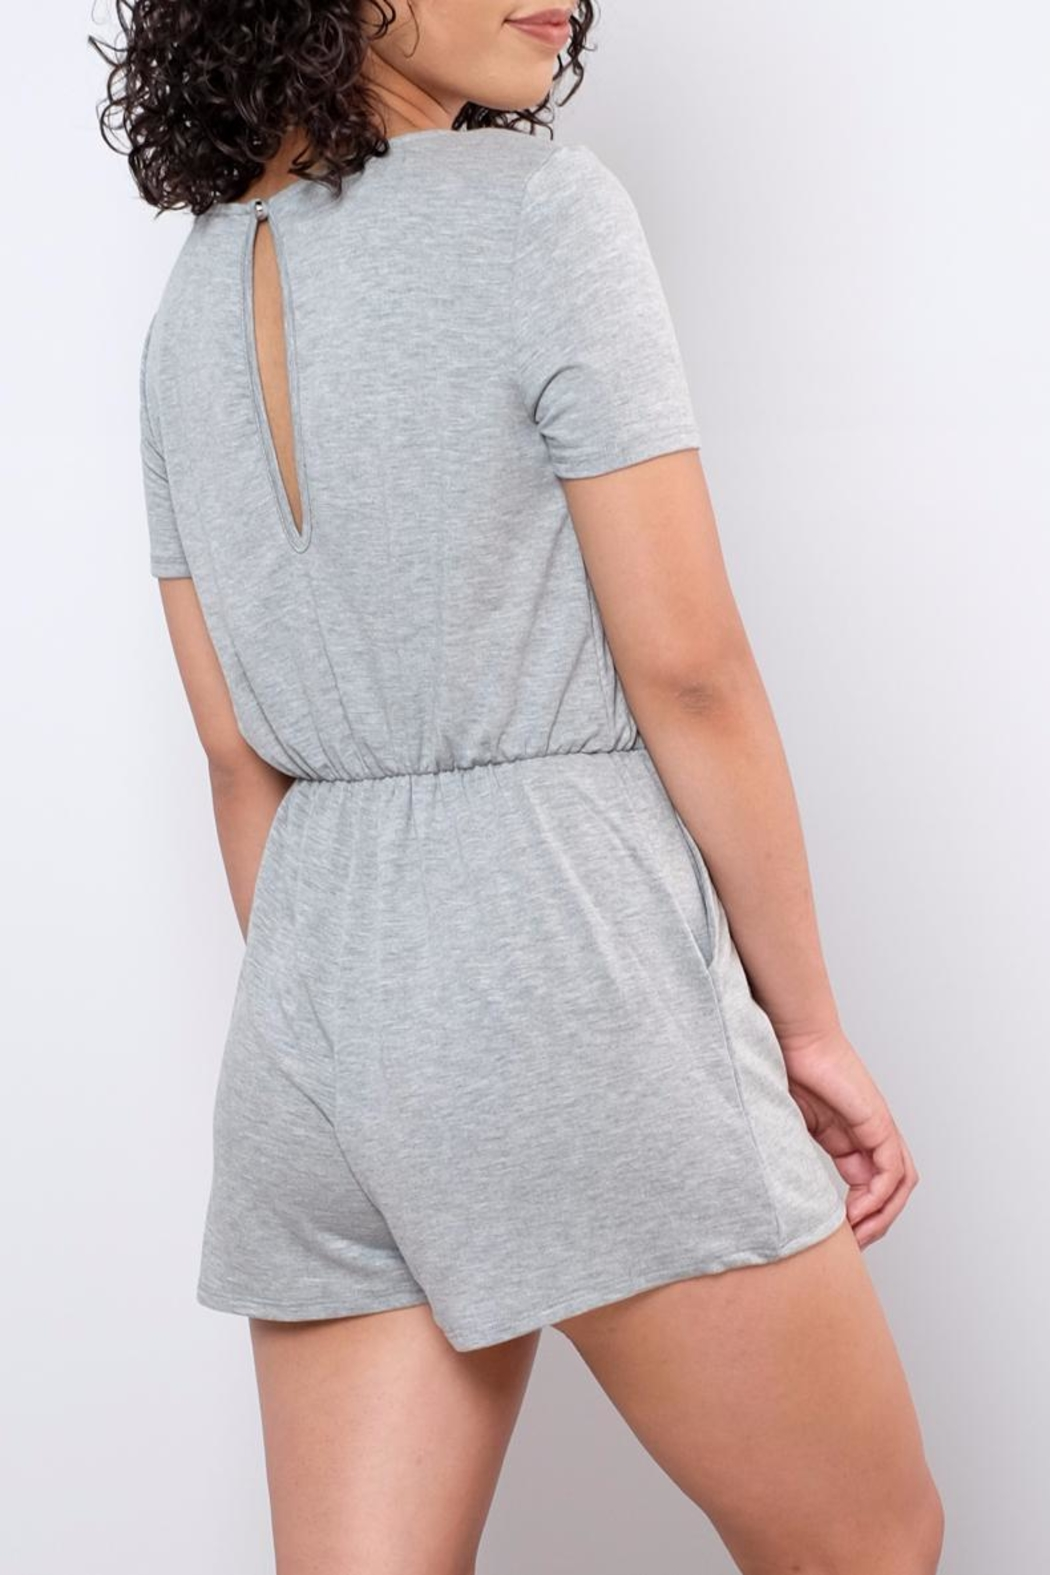 Everly Surplice Romper - Side Cropped Image